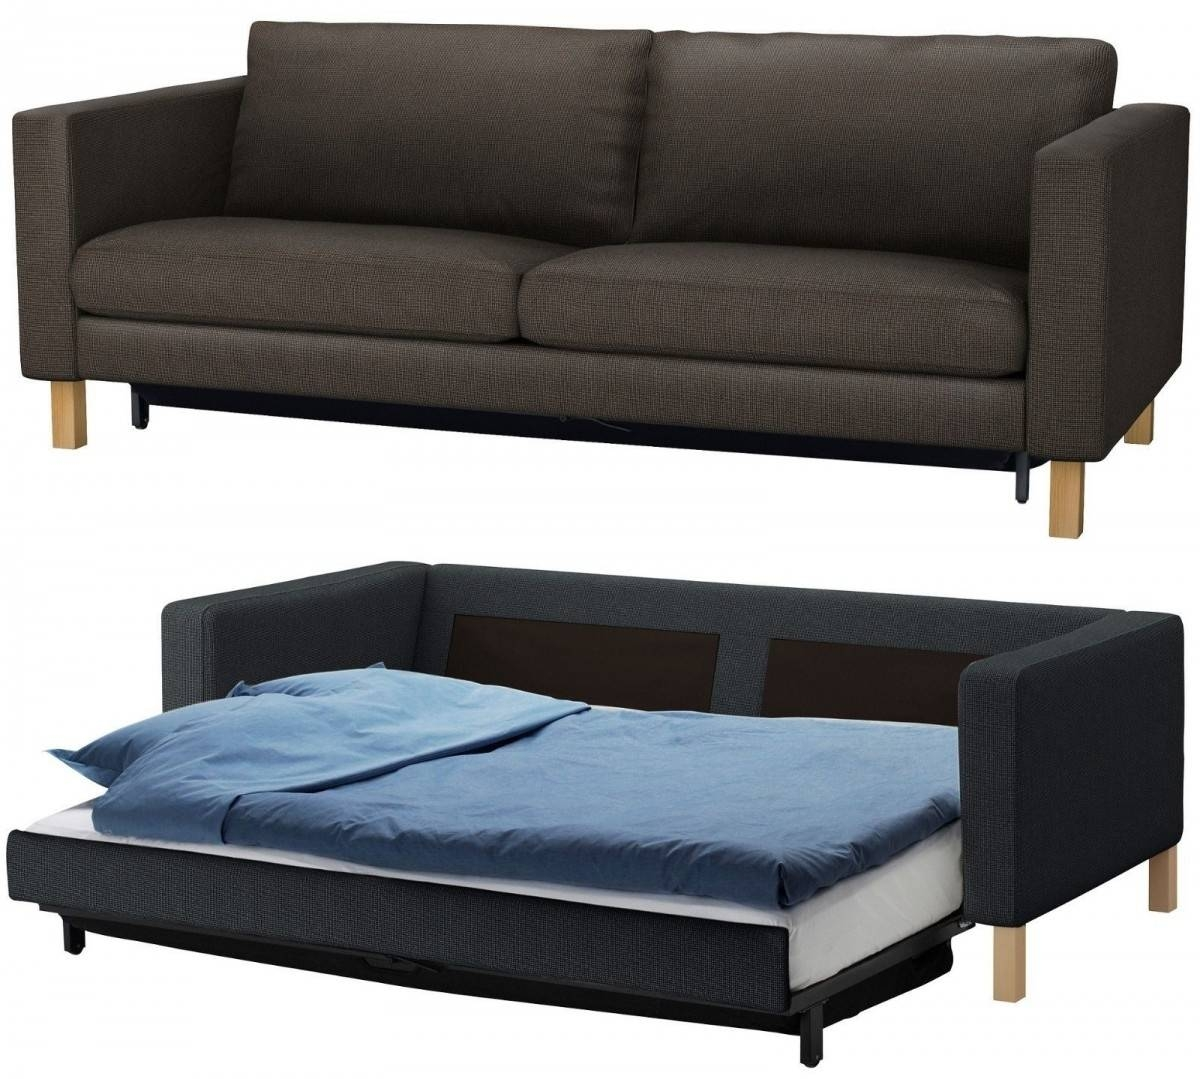 Sofas: Sleeper Sofas Ikea That Great For A Quick Snooze Or Night intended for Mini Sofa Sleepers (Image 26 of 30)